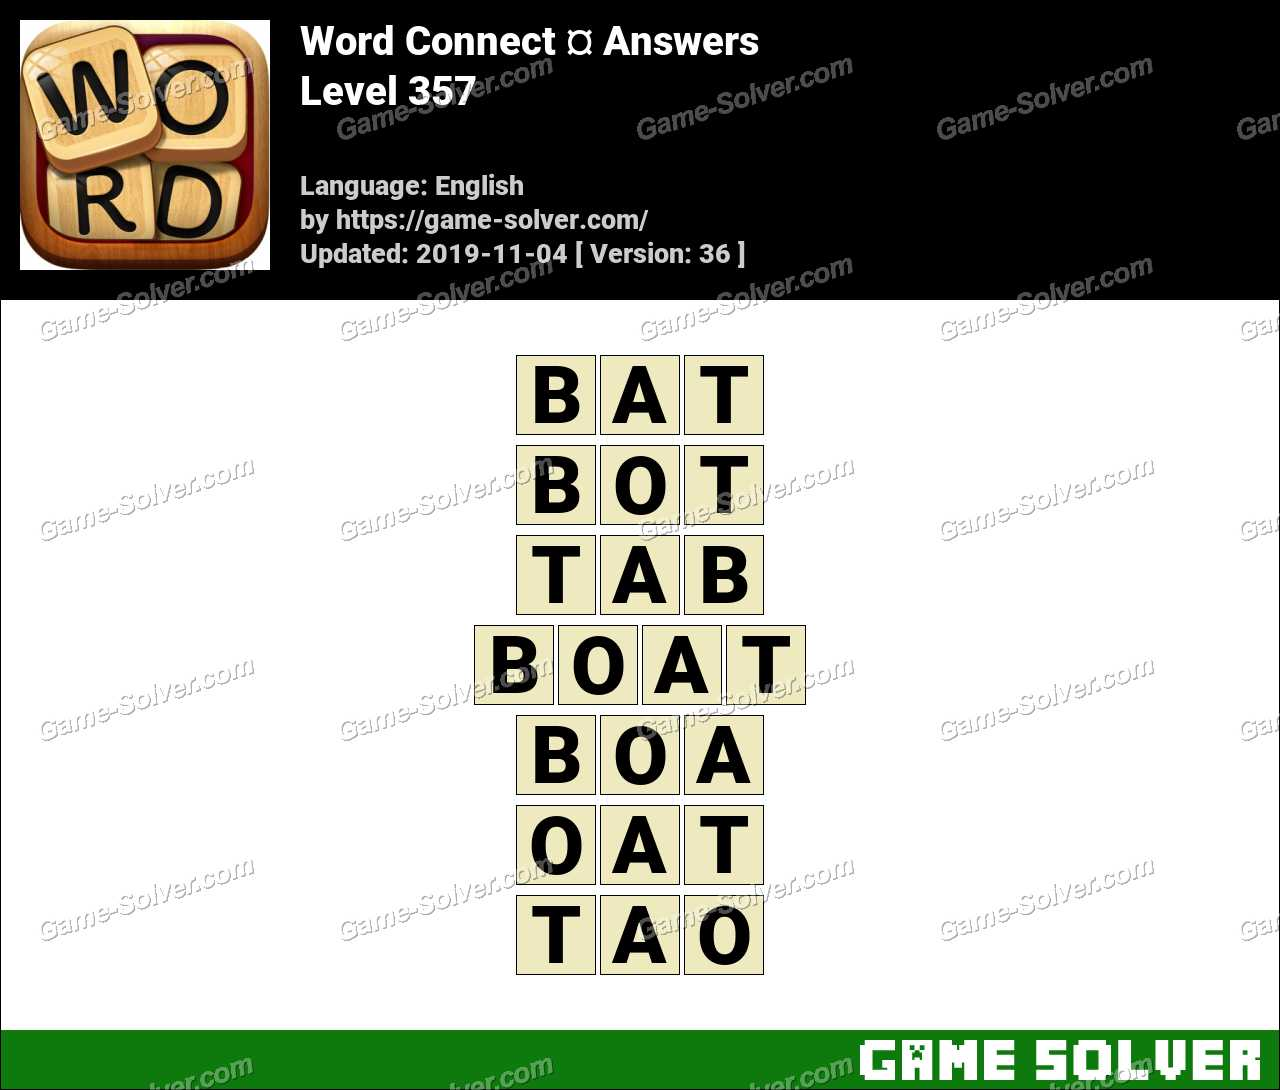 Word Connect Level 357 Answers